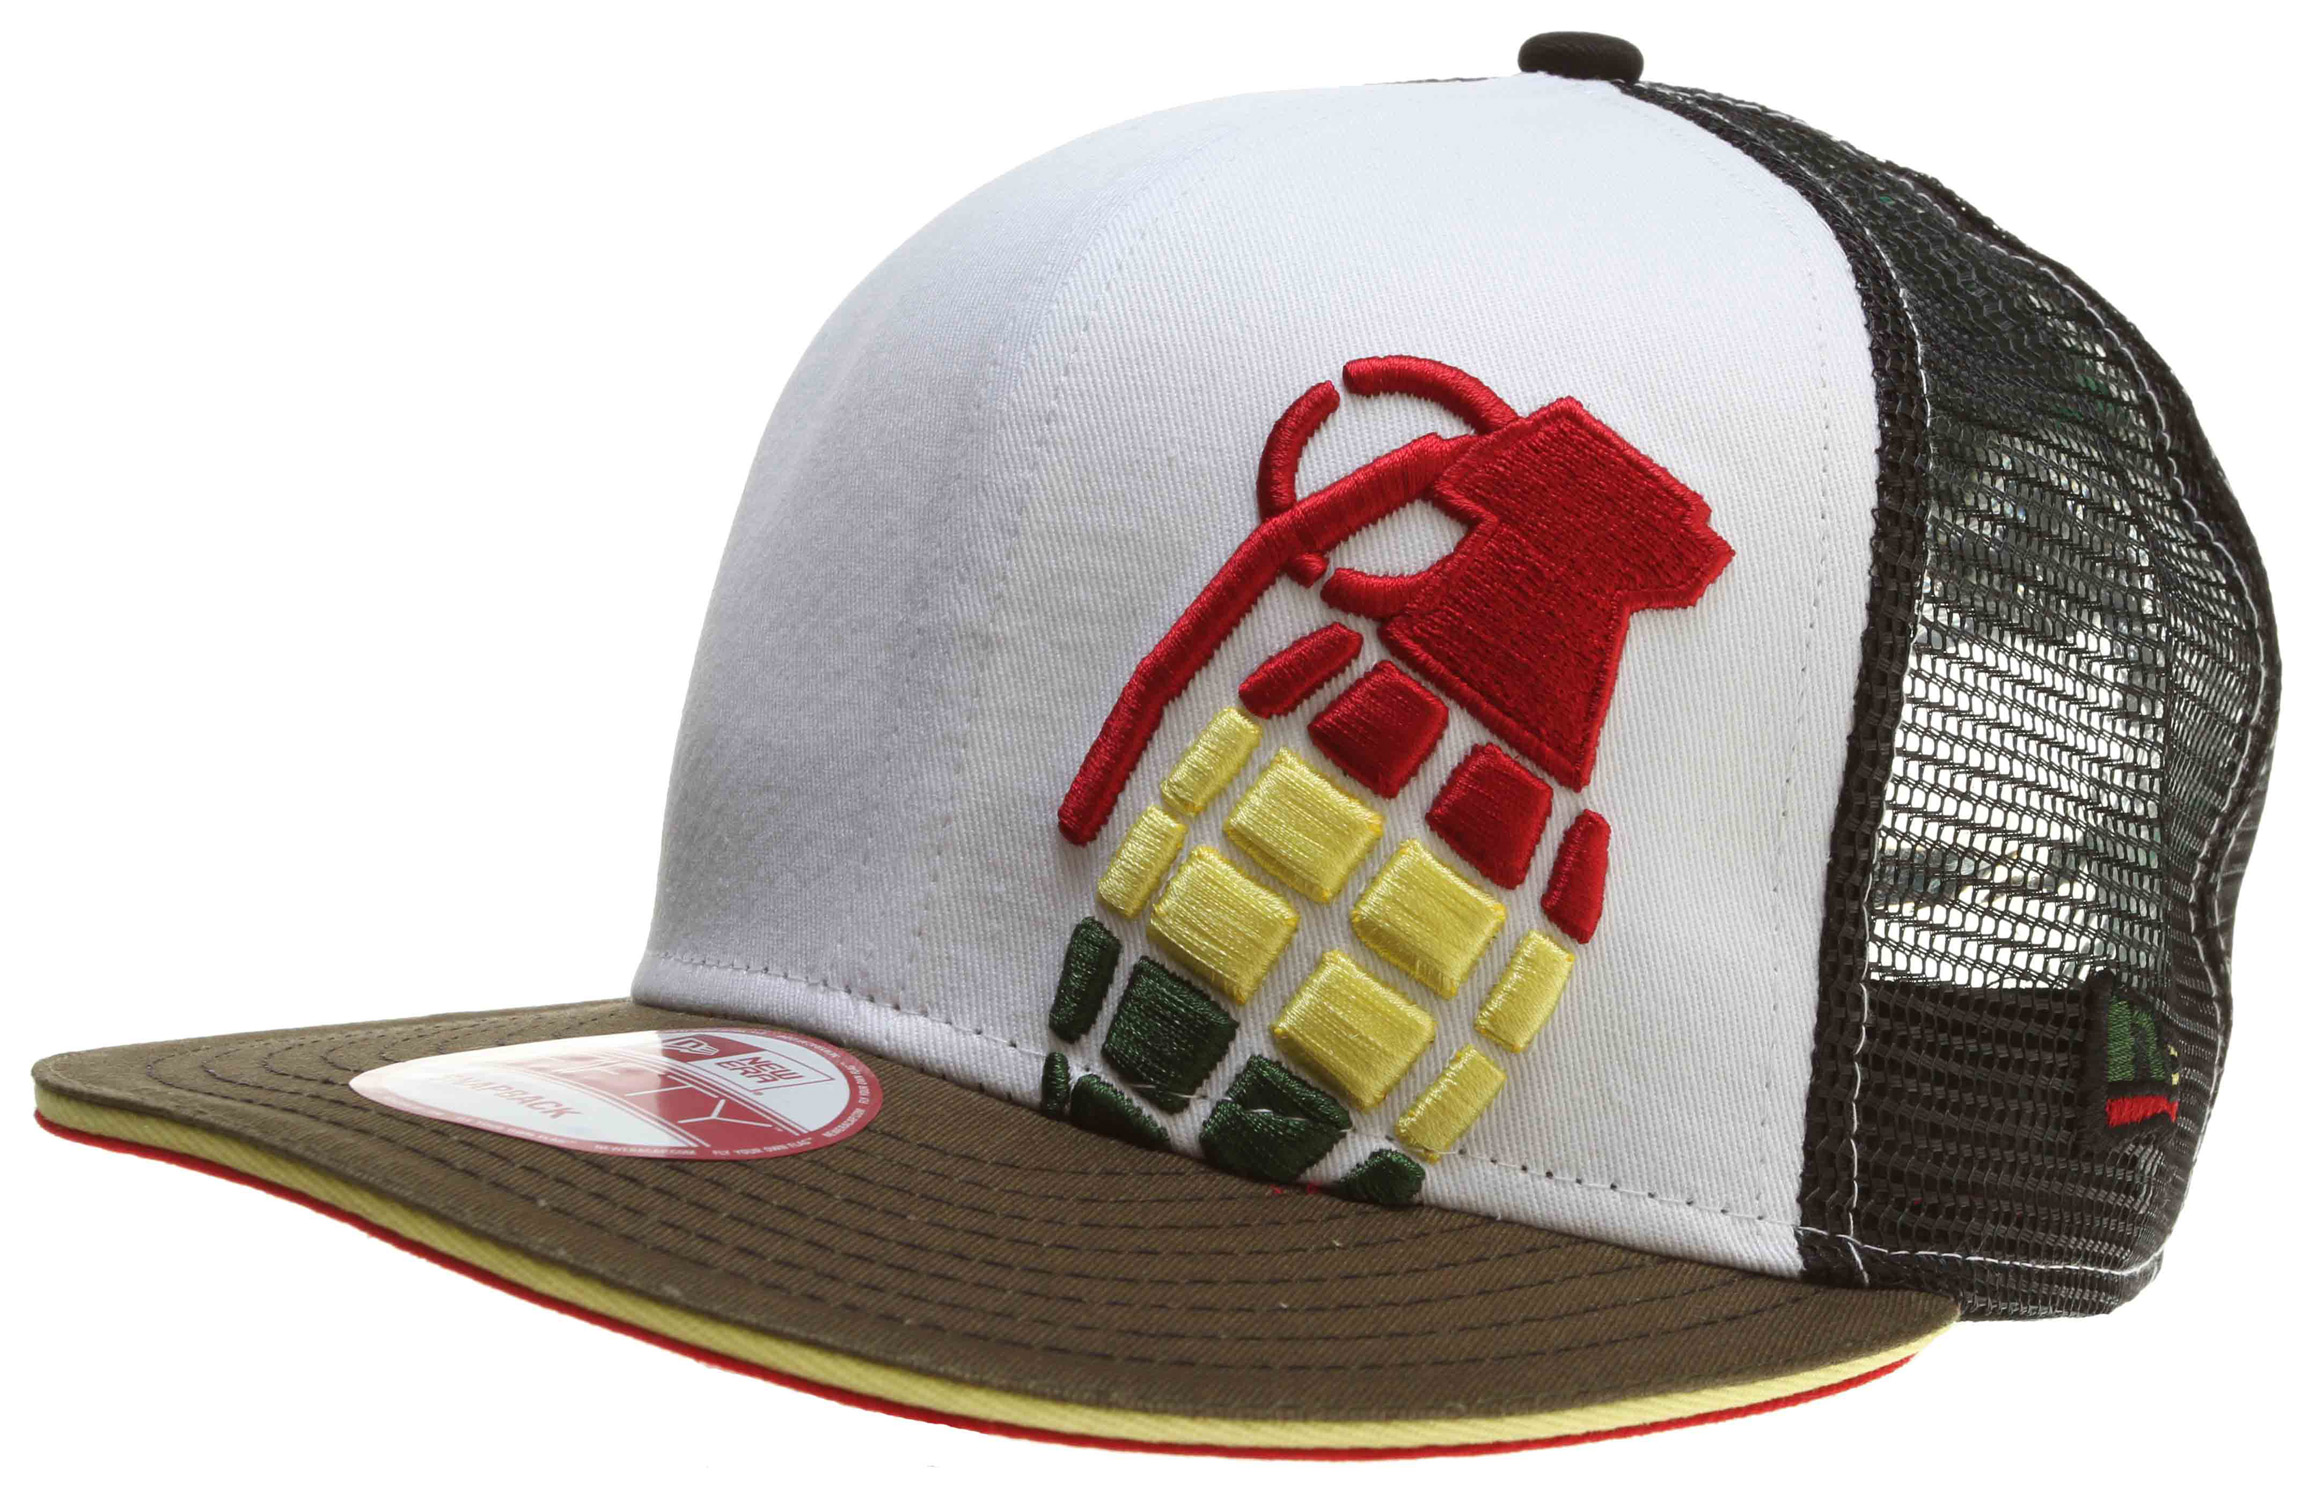 Key Features of the Grenade Halfer Irie Mesh Cap: 100% cotton New Era Mesh Snap Back Embroidered logo - $16.95